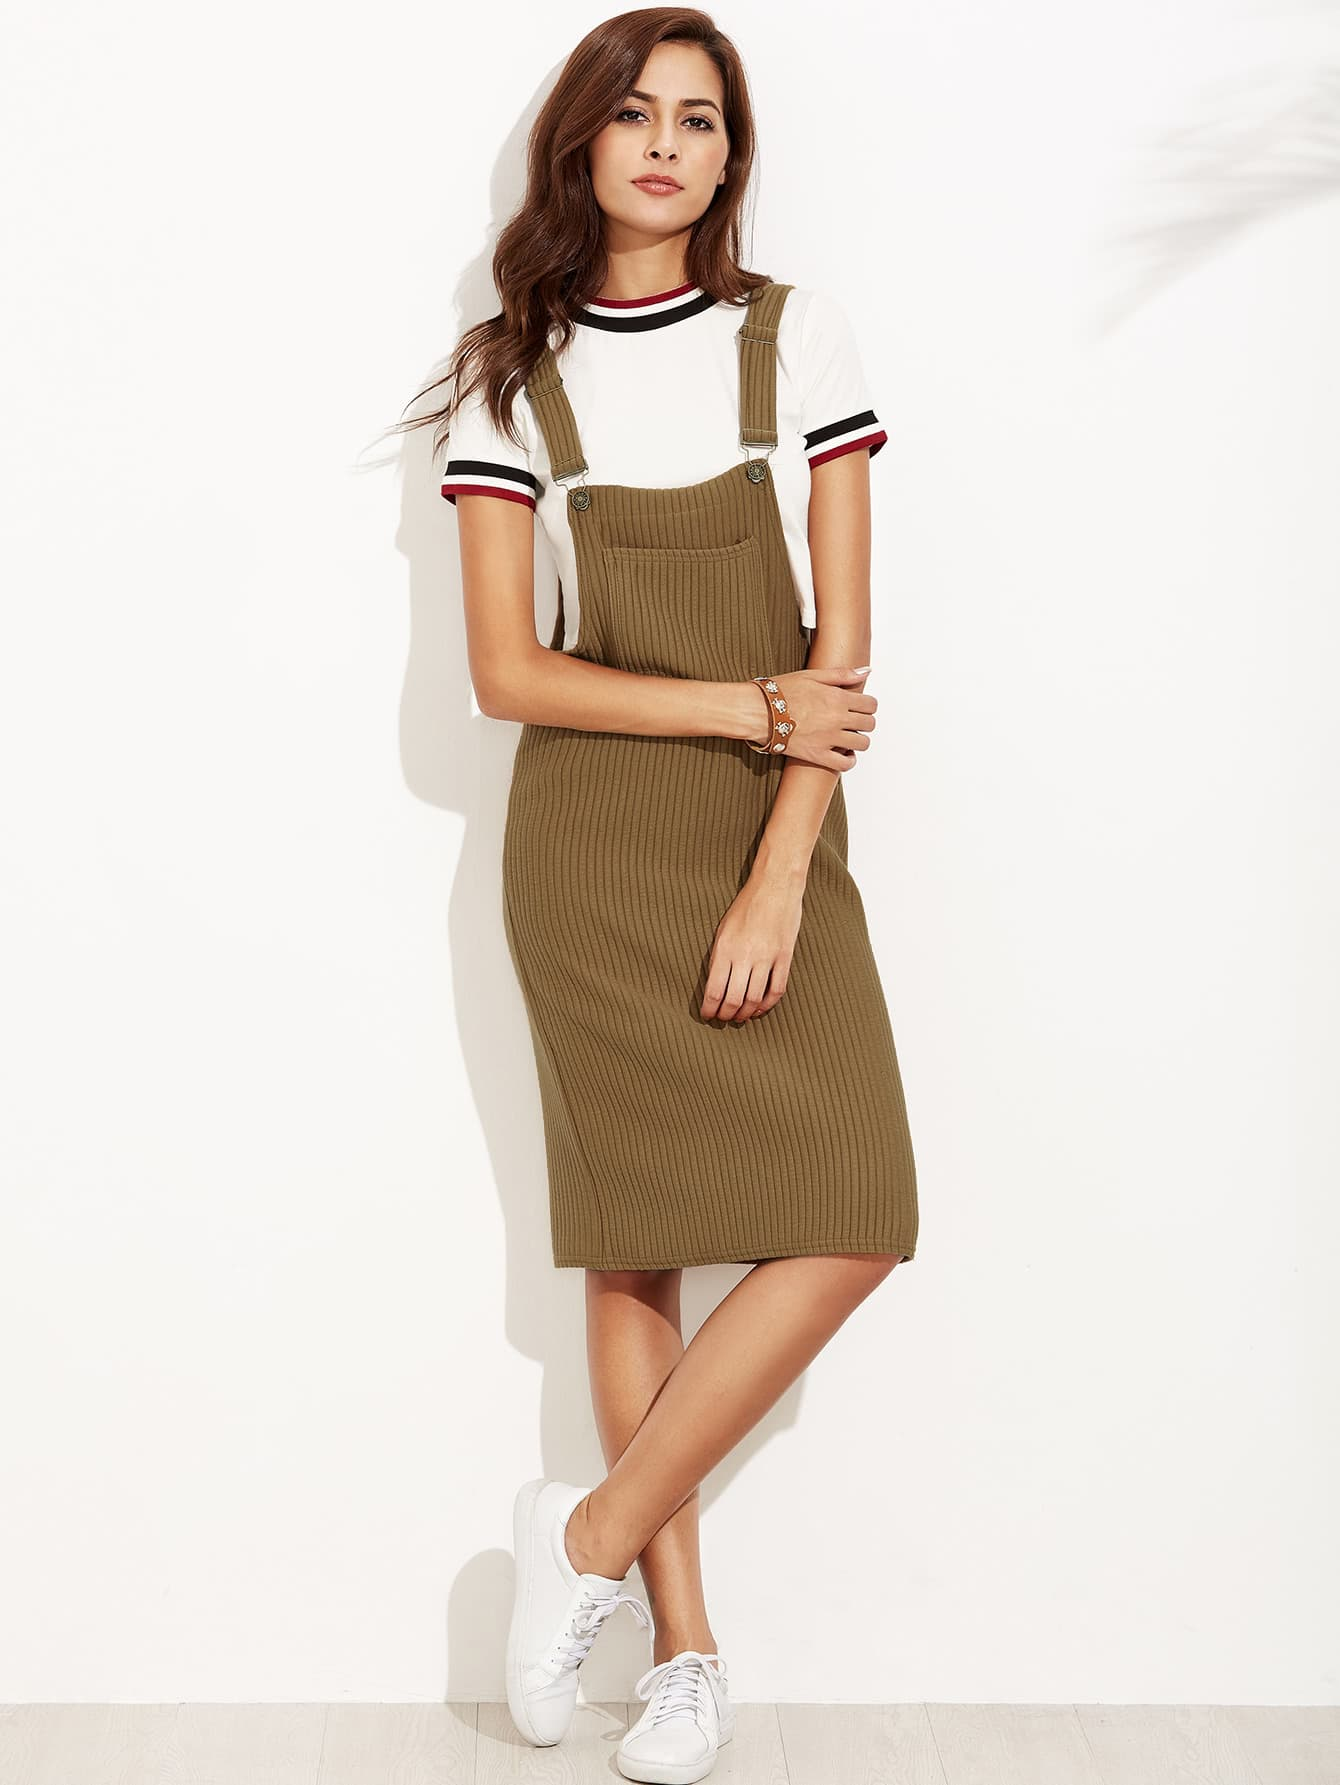 Ribbed Overall Dress With Pockets dress160817122